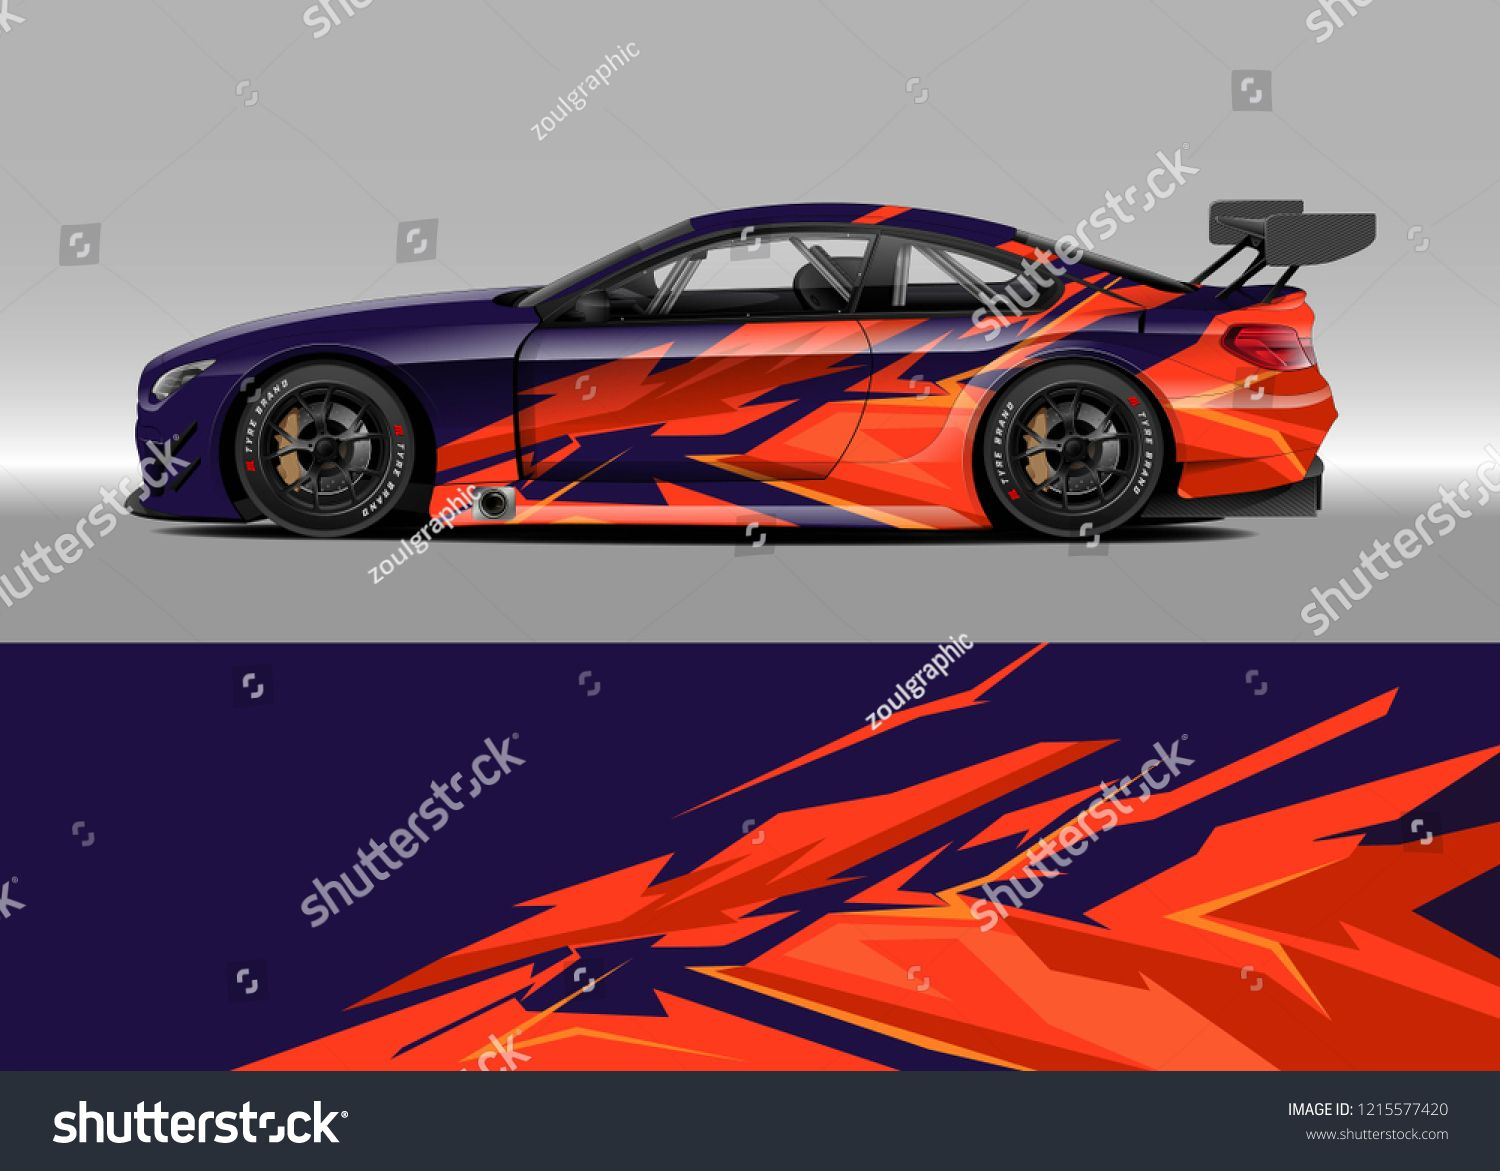 Car Decal Design Vector Graphic Abstract Stripe Racing Background Kit Designs For Wrap Vehicle Race Car Rally Adventure A Decal Design Race Cars Car Decals